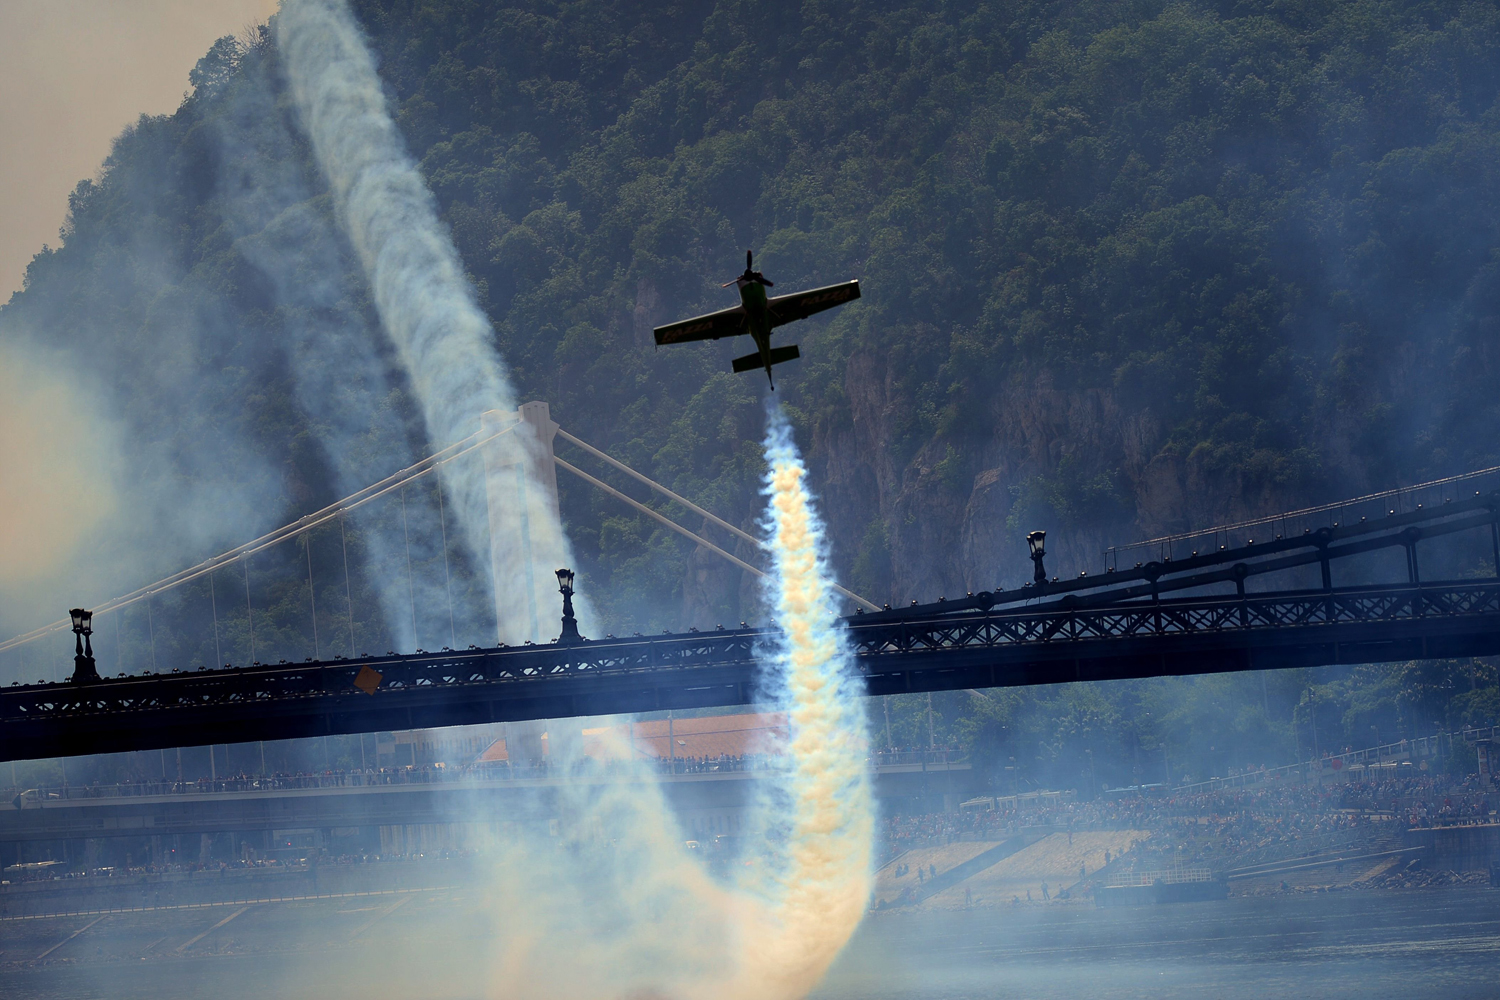 May 1, 2014.                                Hungarian pilot and European champion Zoltan Veres flies under the oldest Hungarian bridge, the 'Lanchid' (Chain Bridge) with his 'MXS' type plane on during a Red Bull flying and car show around the Danube River in Budapest, Hungary.